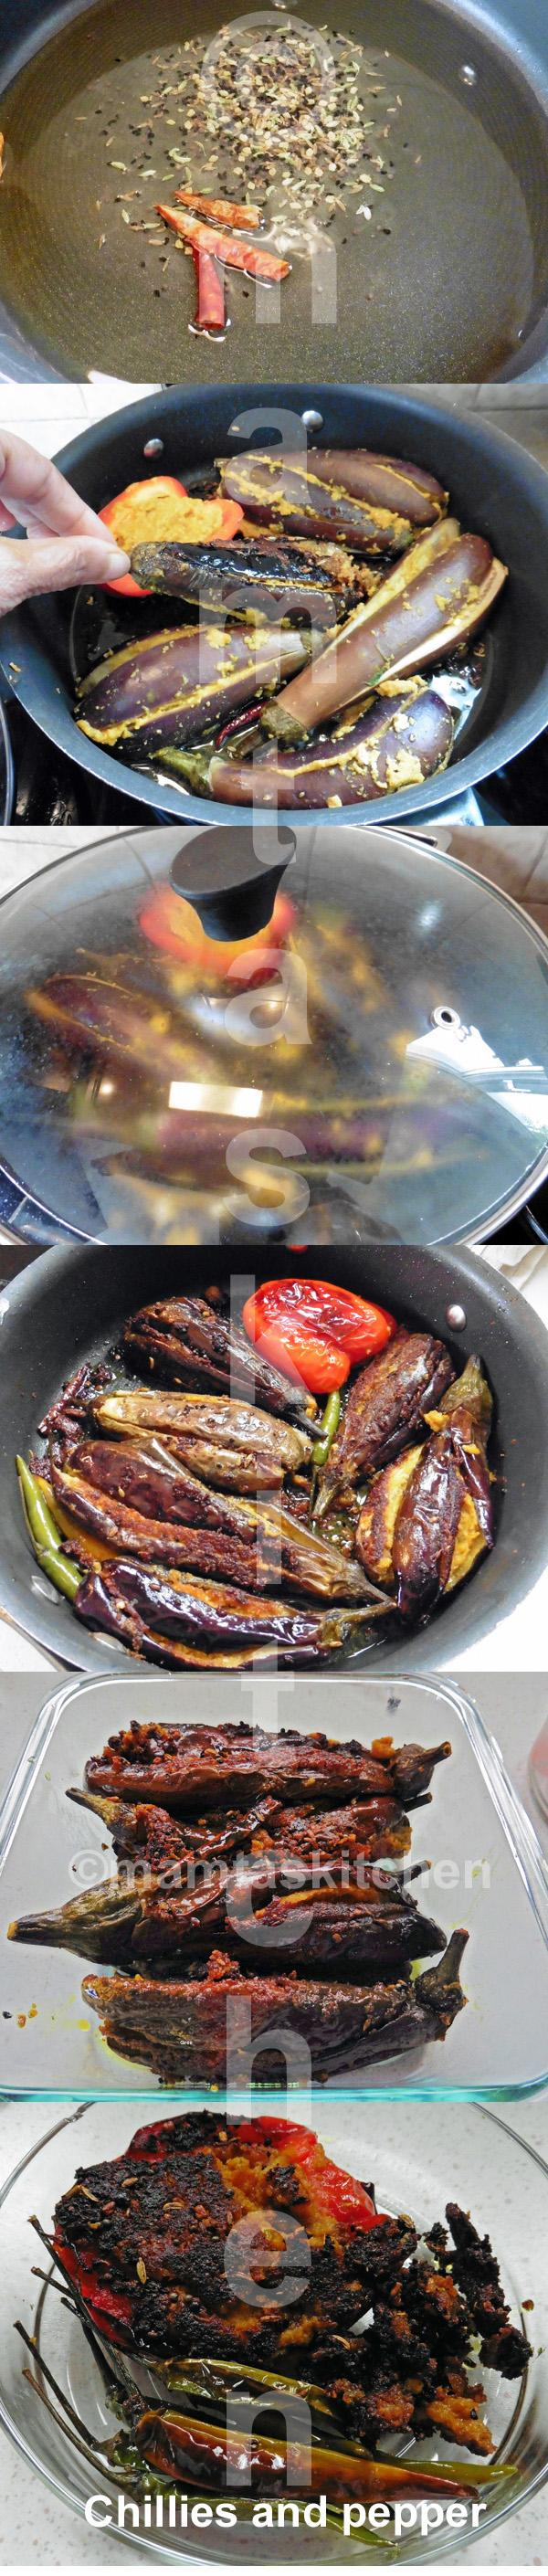 Aubergine Sabji Stuffed With Besan (Bengal Gram Flour) And Spices